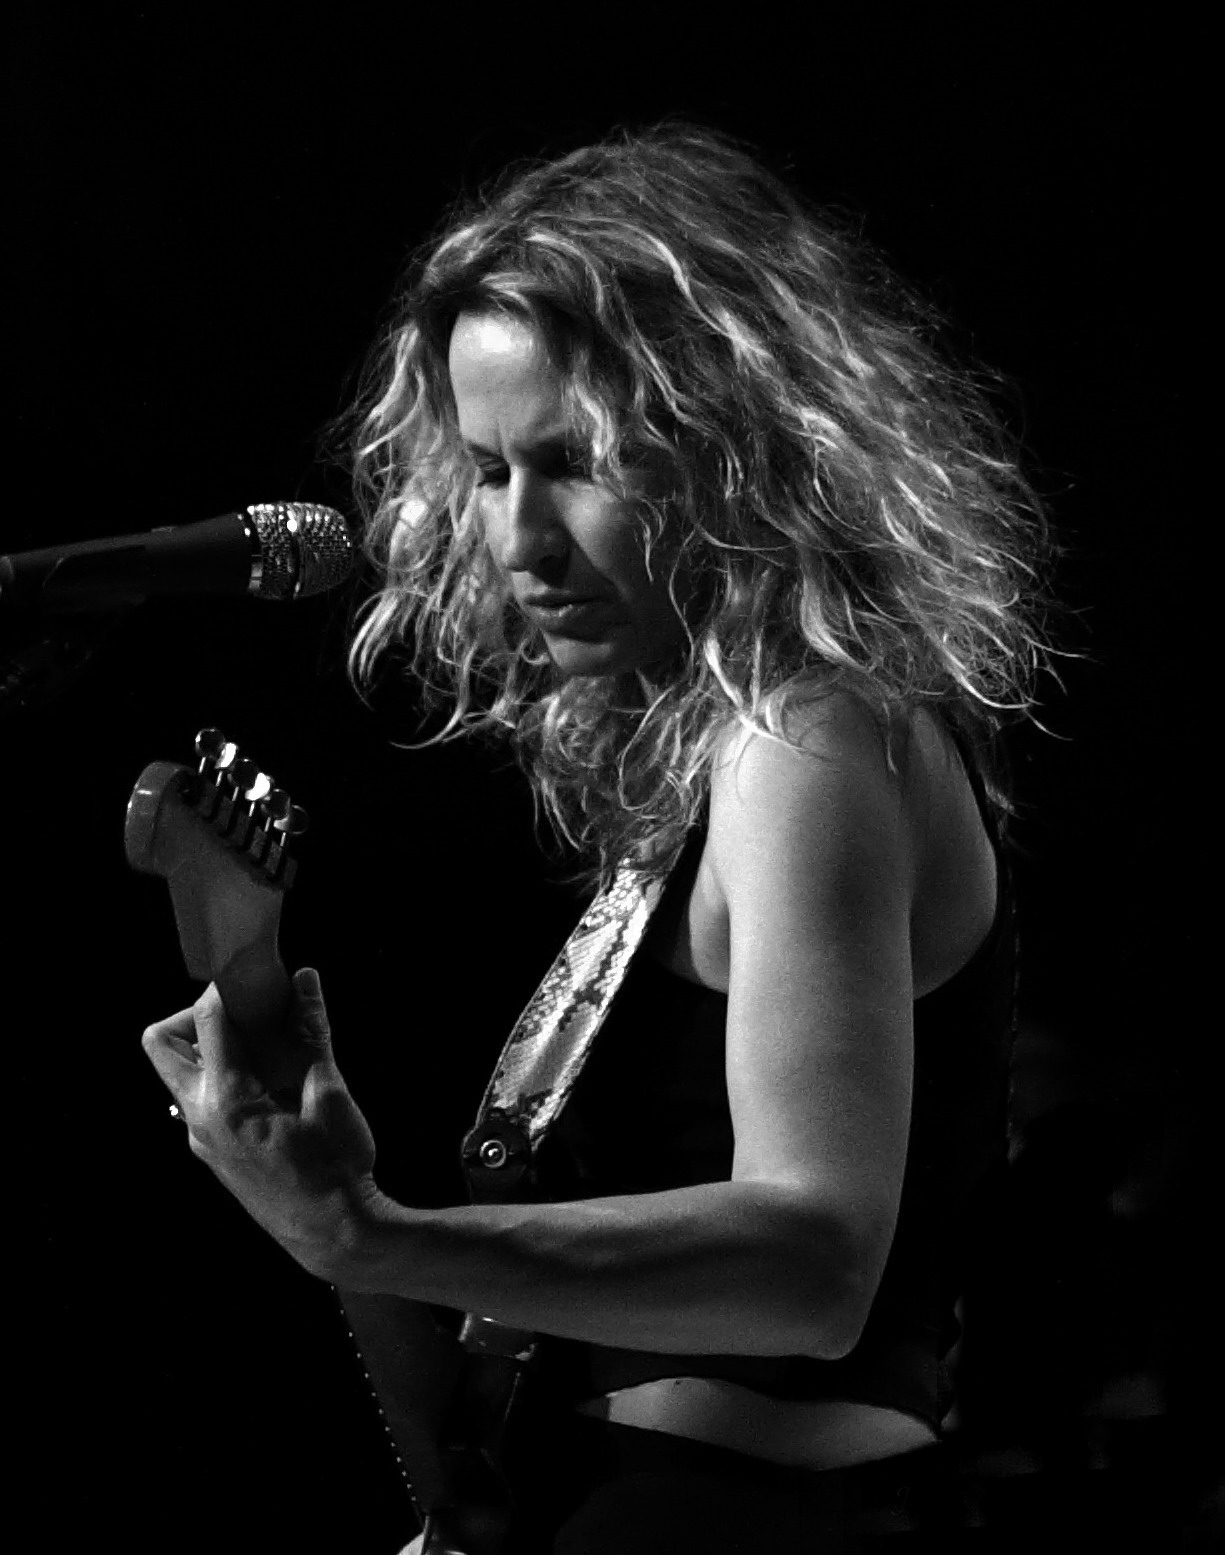 ana popovic author osterman john